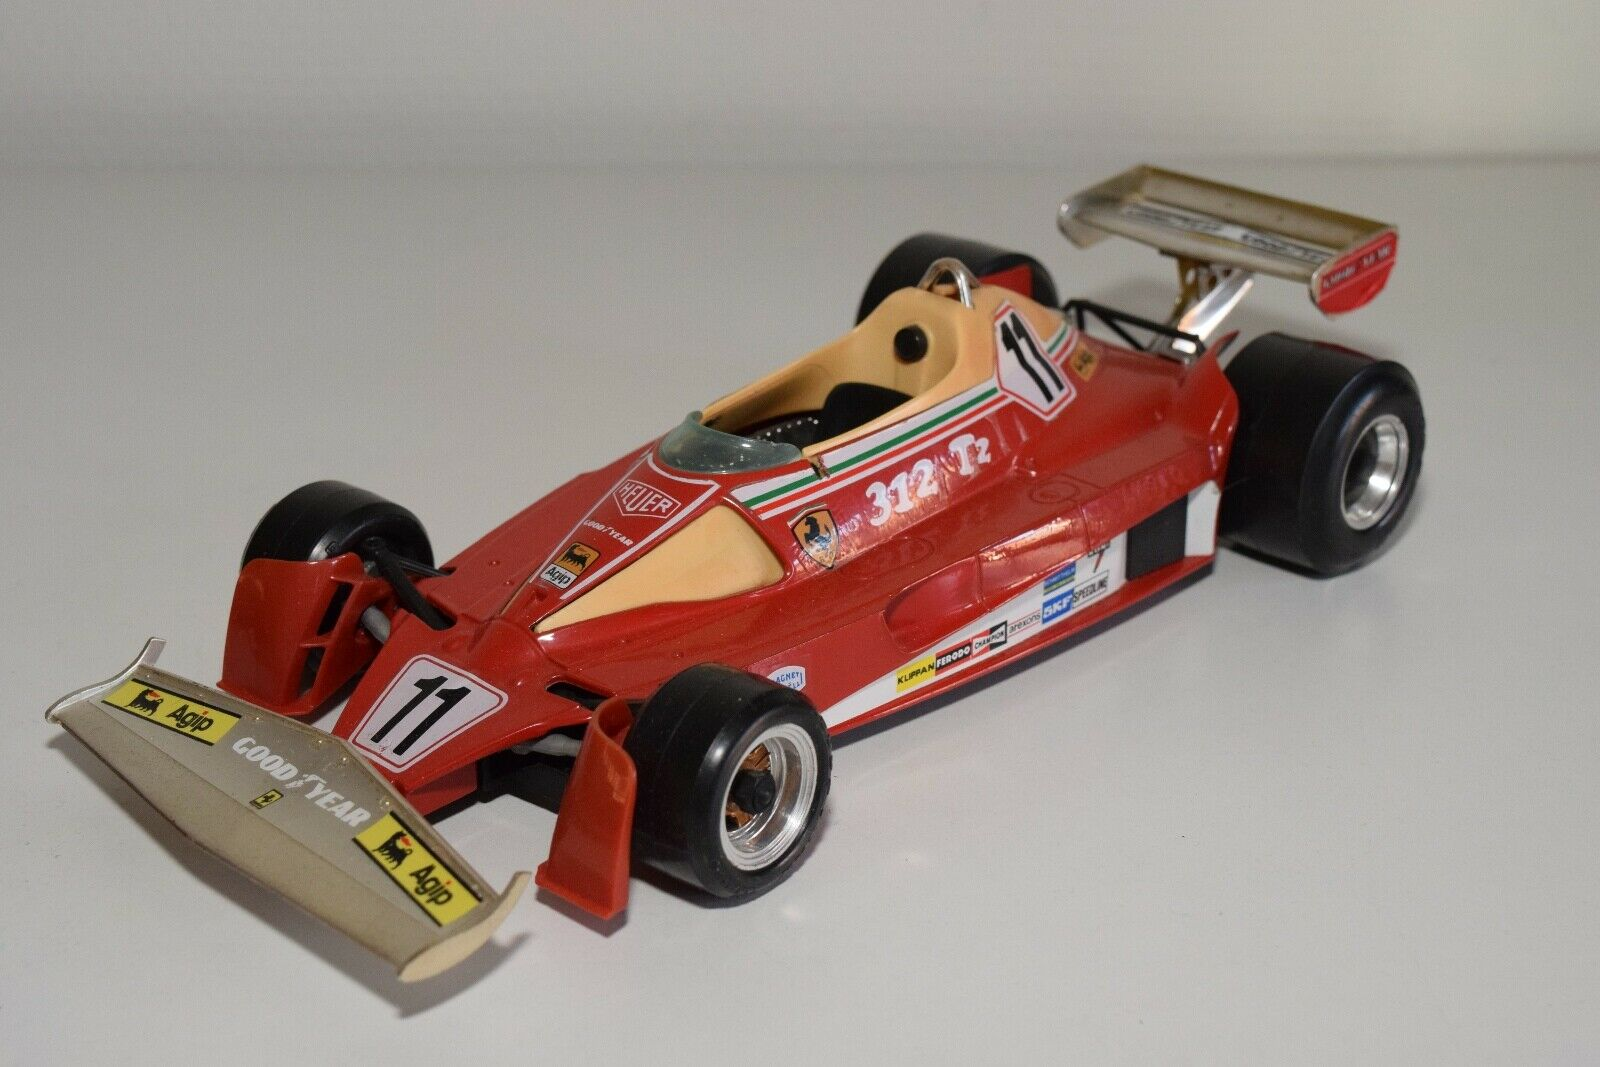 V 1 14 BBURAGO BURAGO 2101 FERRARI 312 T2 F1 FORMULA 1 EXCELLENT CONDITION